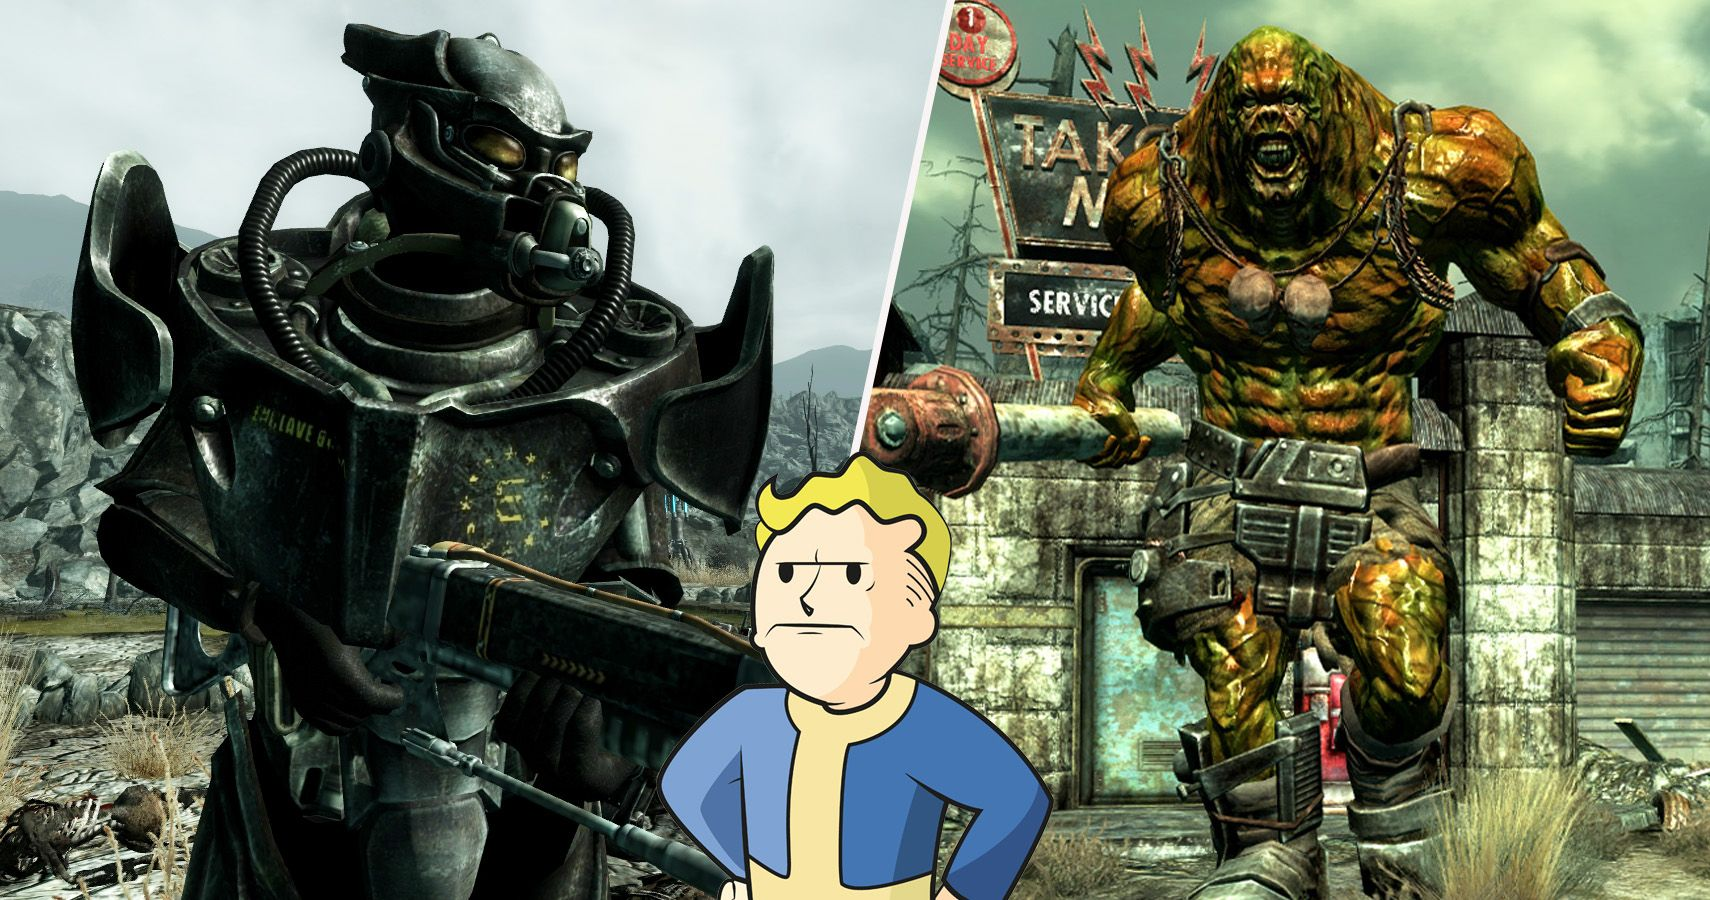 25 Glaring Problems With Fallout 3 We All Choose To Ignore